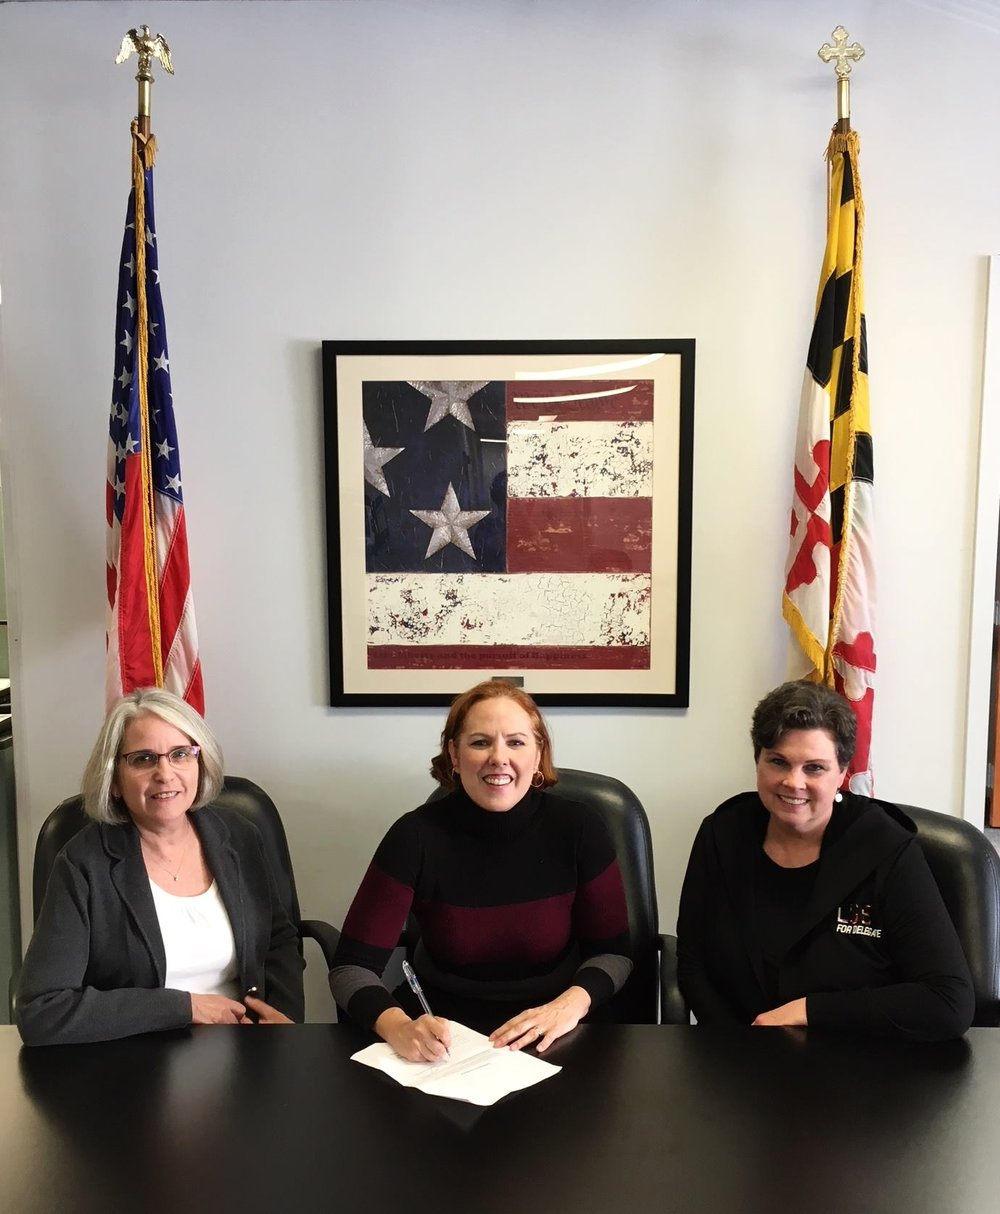 An Unstoppable Team -  Tracie Hovermale ,  Heather Bagnall , &  Pam Luby  - Candidates for Maryland House of Delegates - District 33 #GetInTheRoom